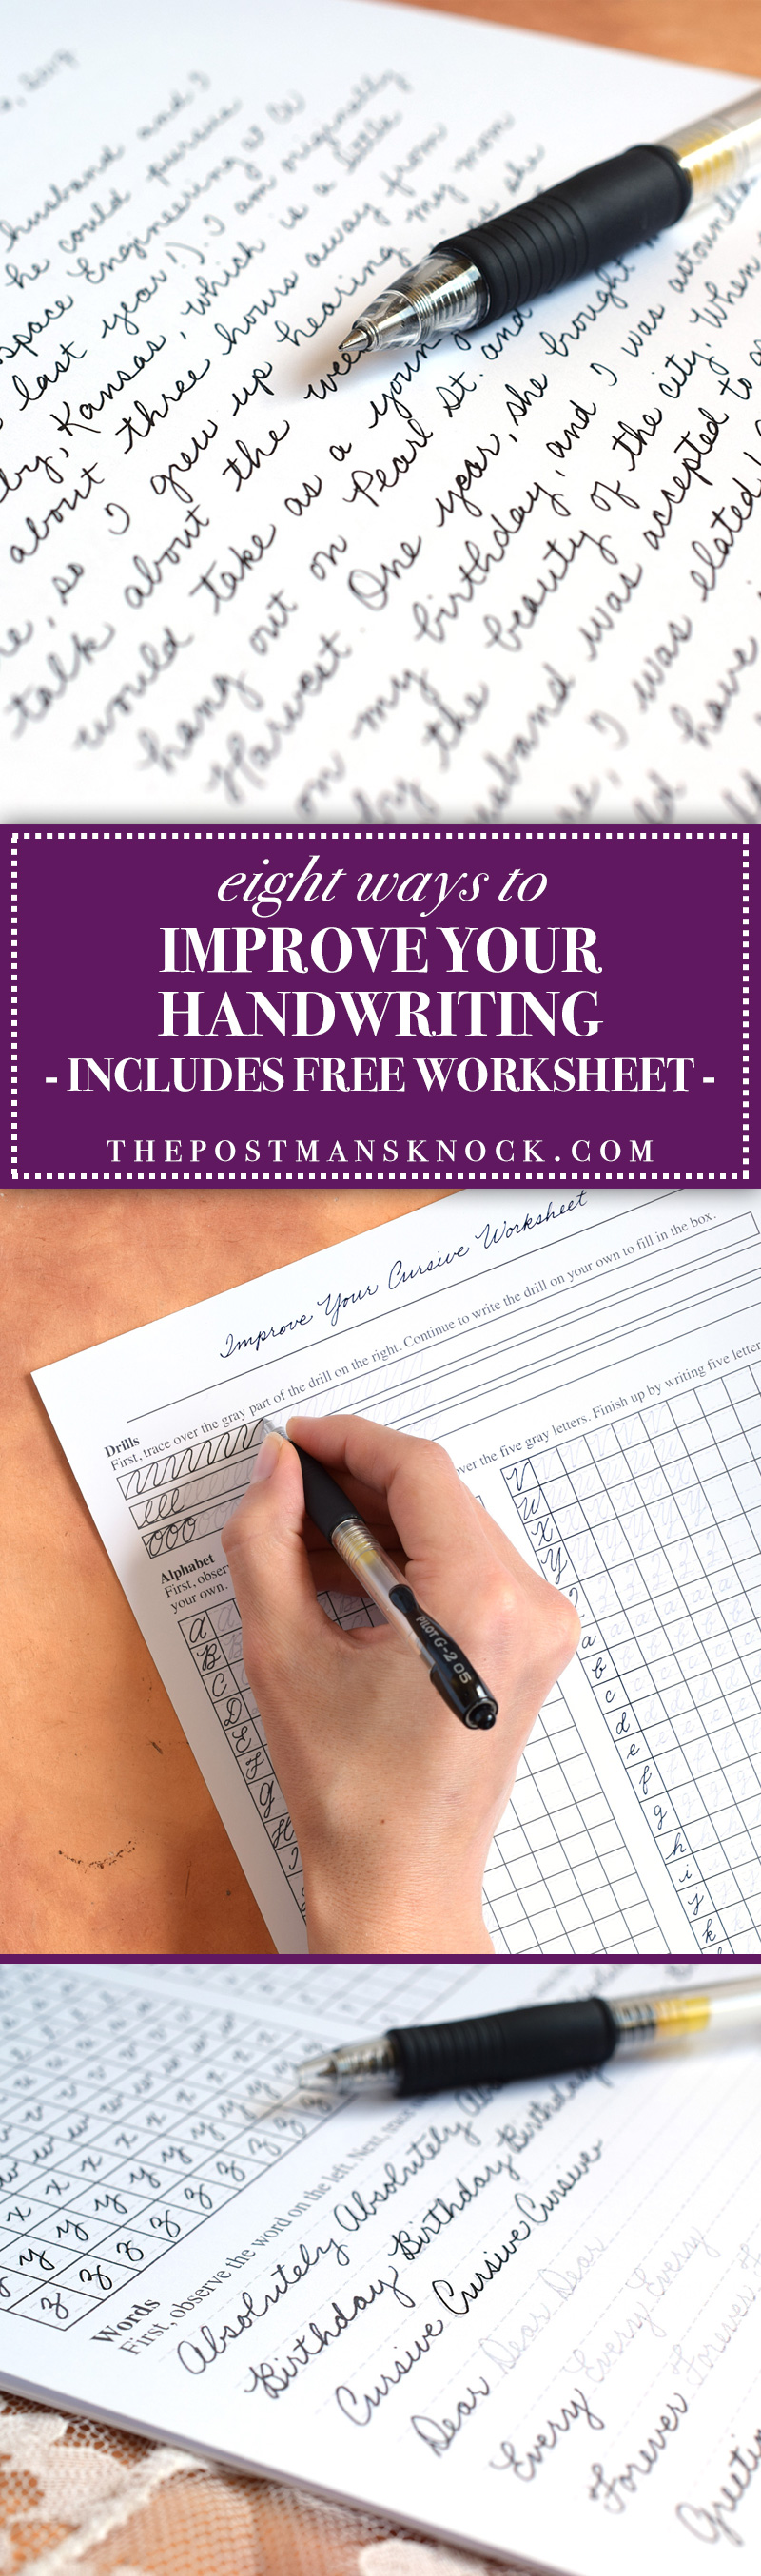 create your own handwriting worksheets free